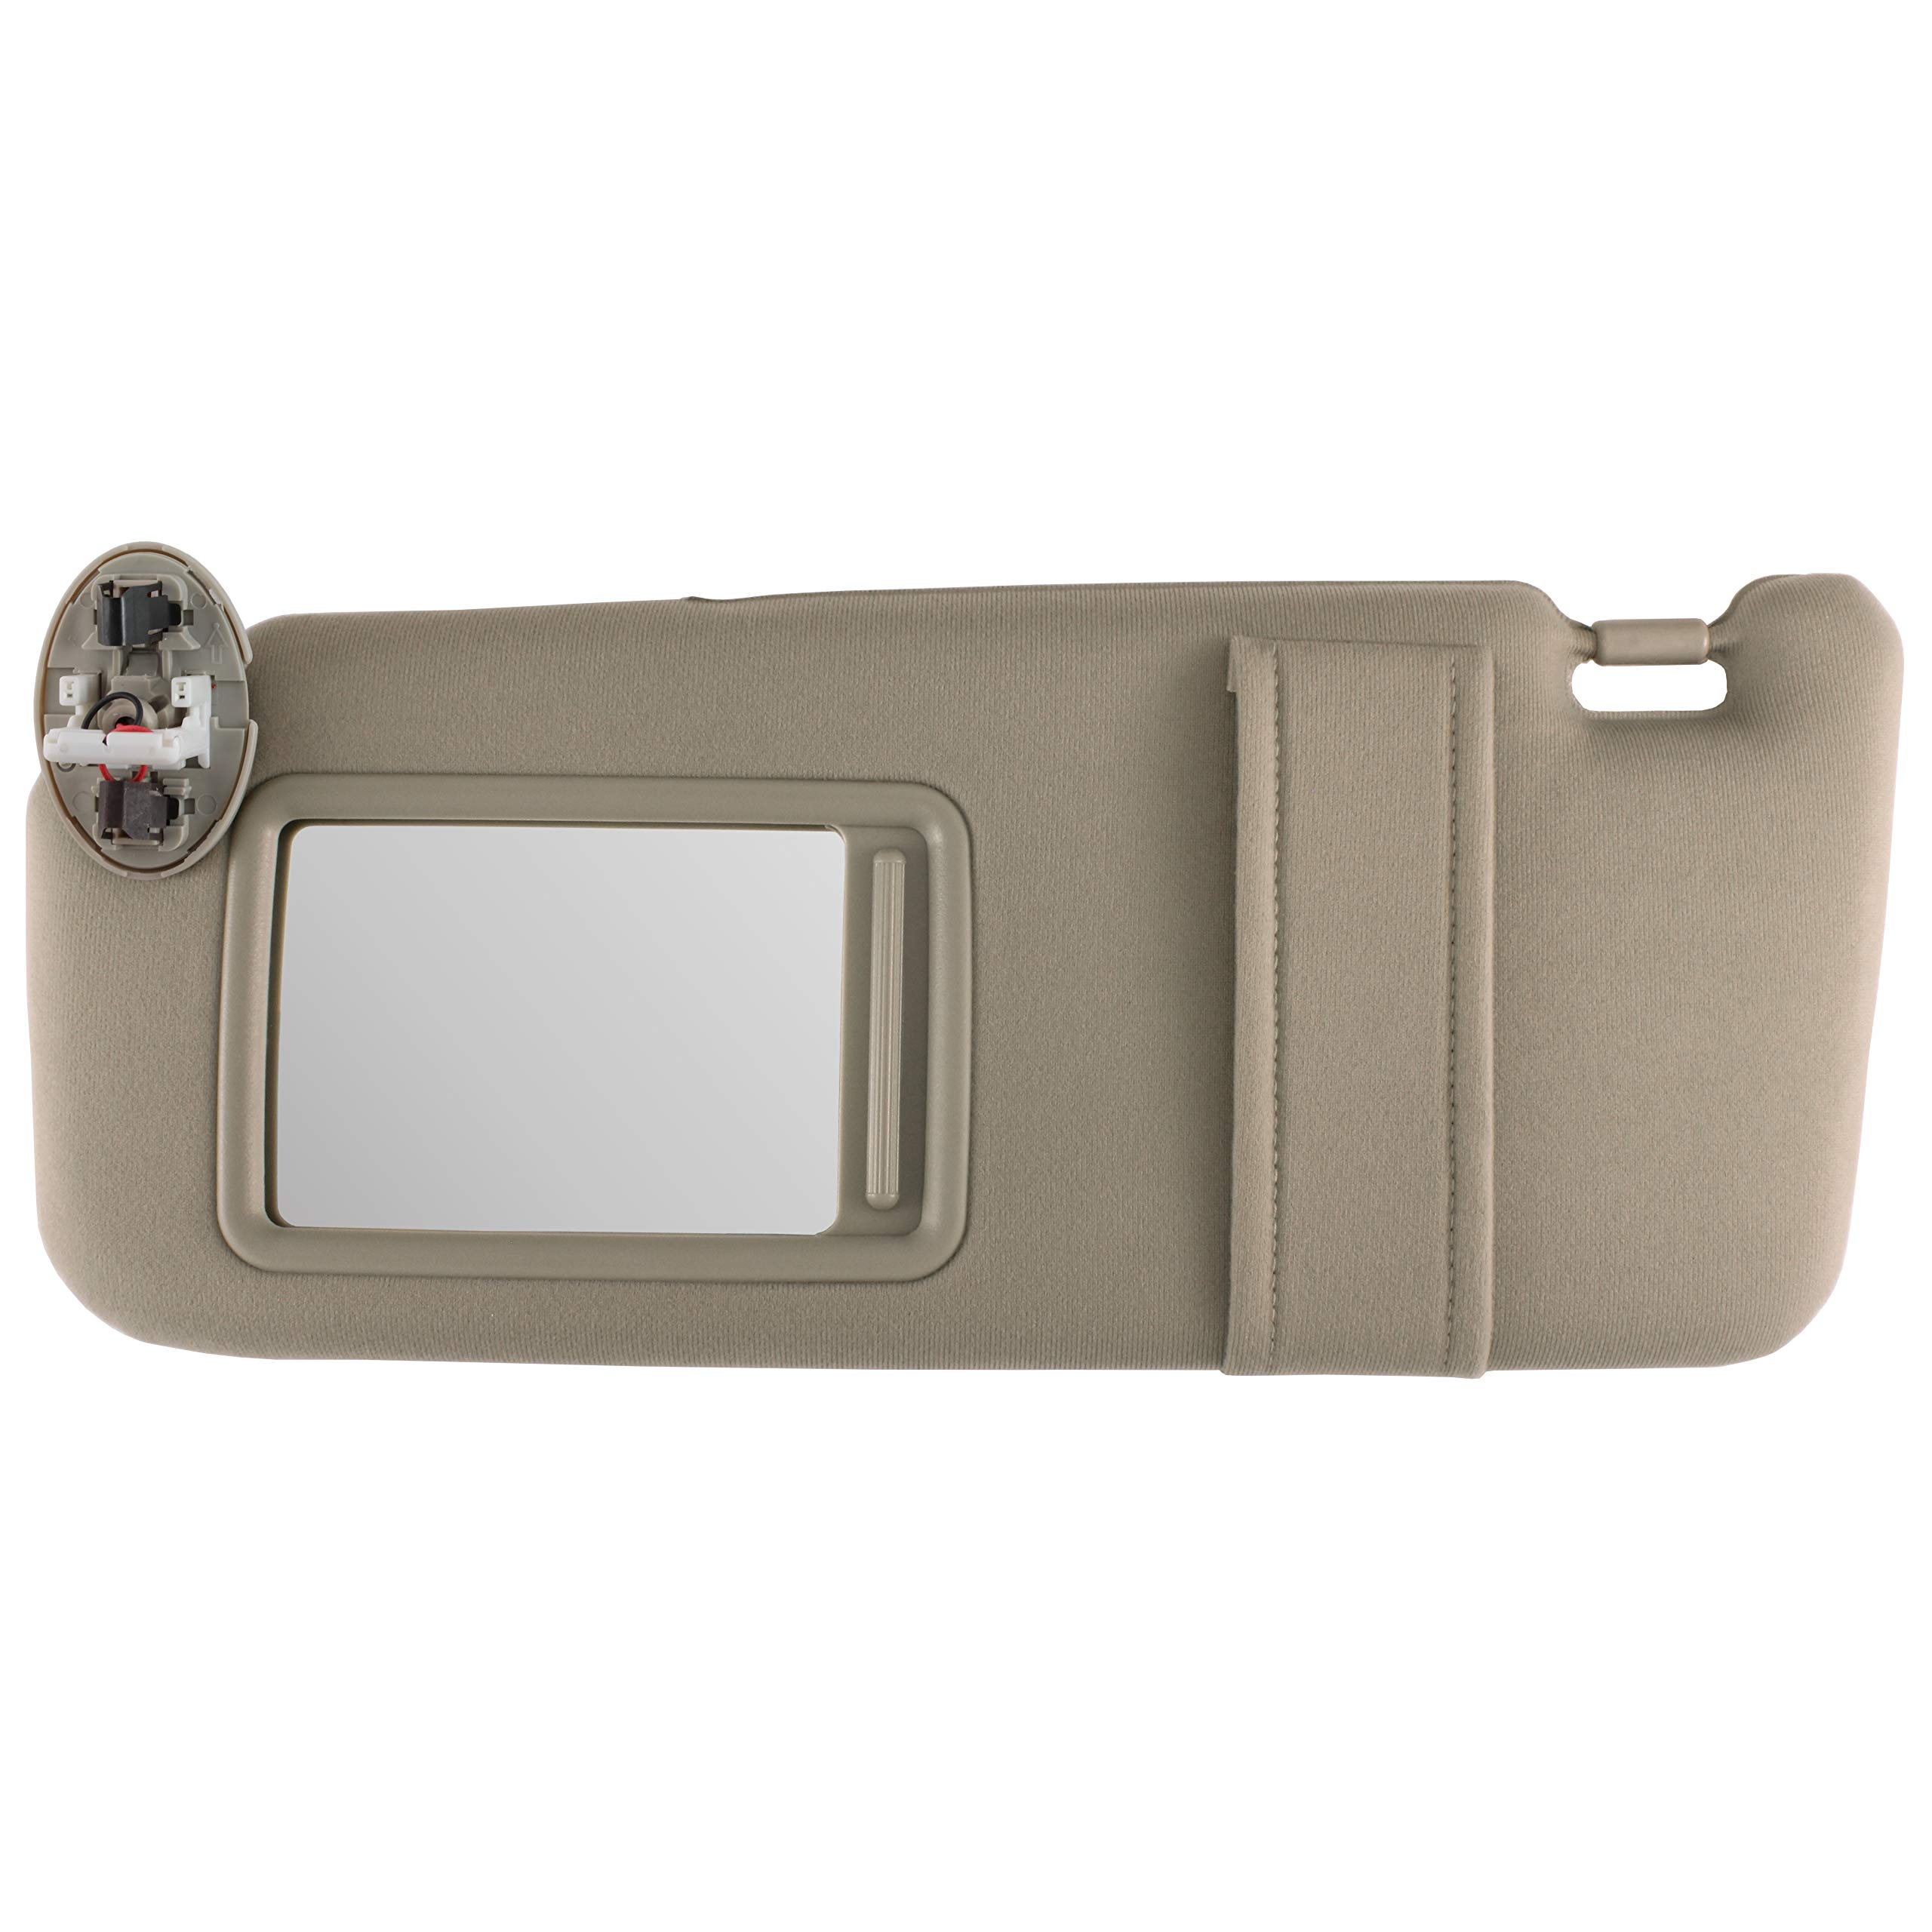 IAMAUTO 10735 New Sun Visor Left Driver Side Tan for 2007 2008 2009 2010 2011 Toyota Camry with Sunroof and Light